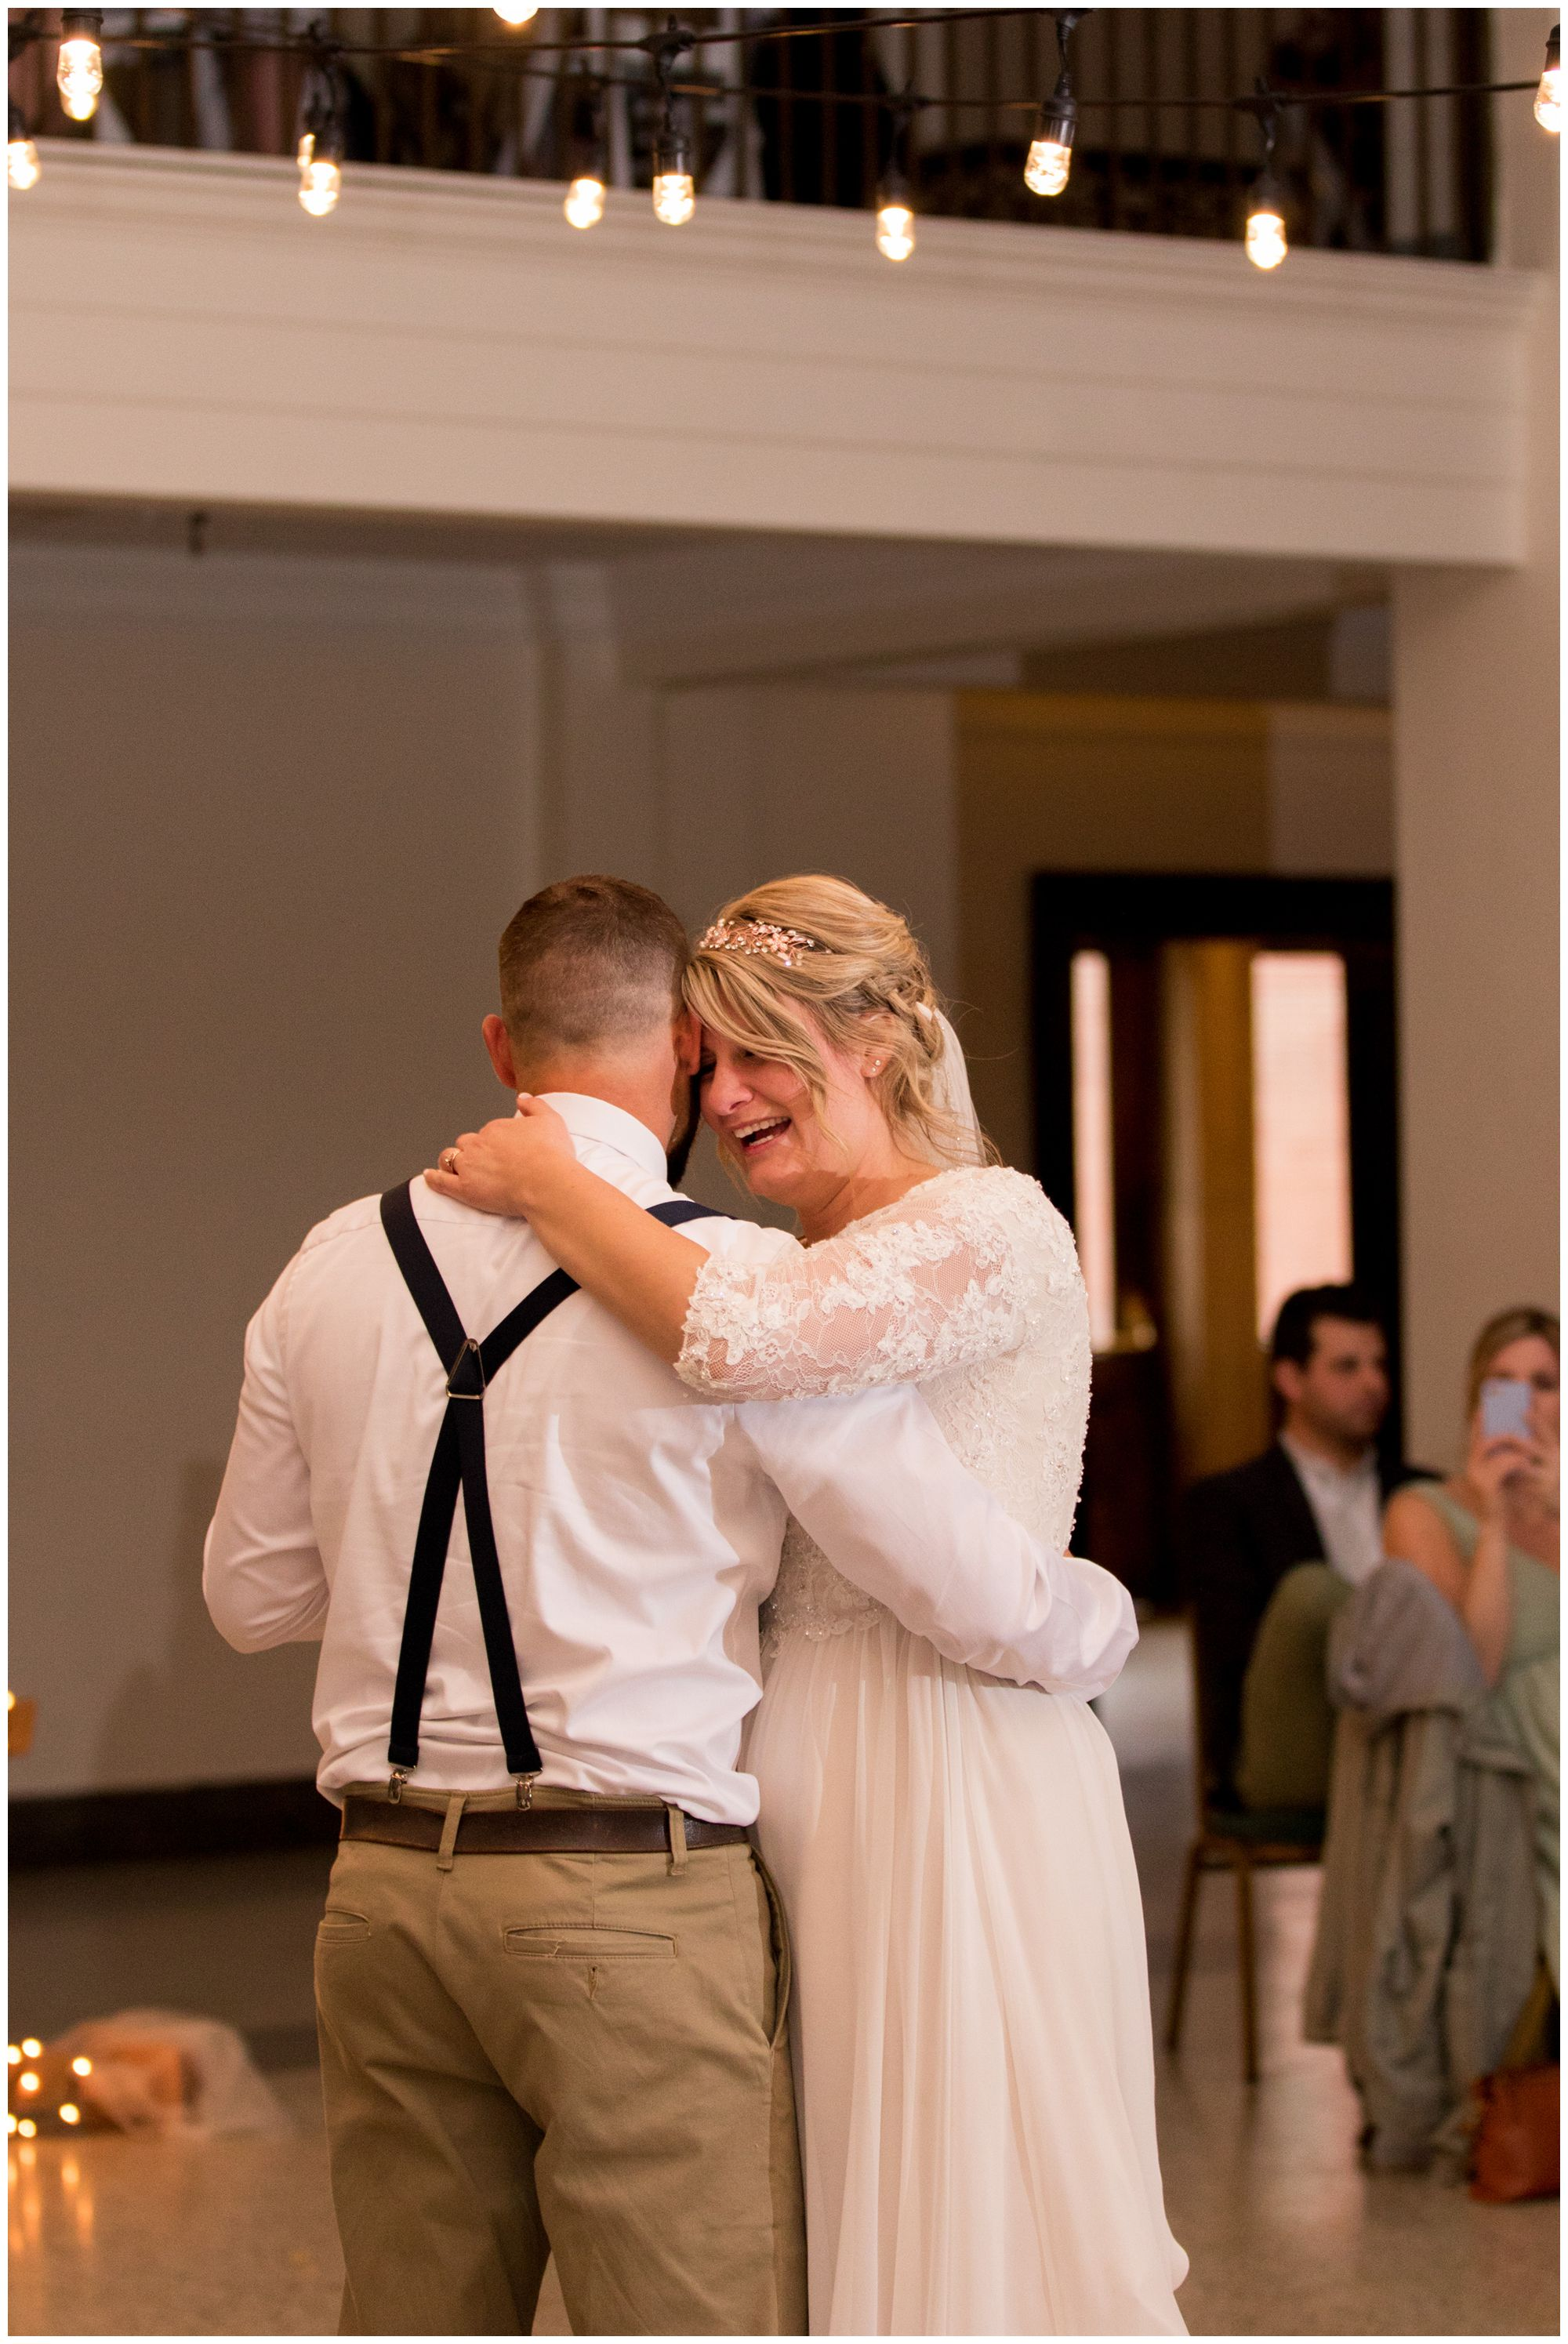 bride and groom first dance during wedding reception at Cornerstone Center for the Arts